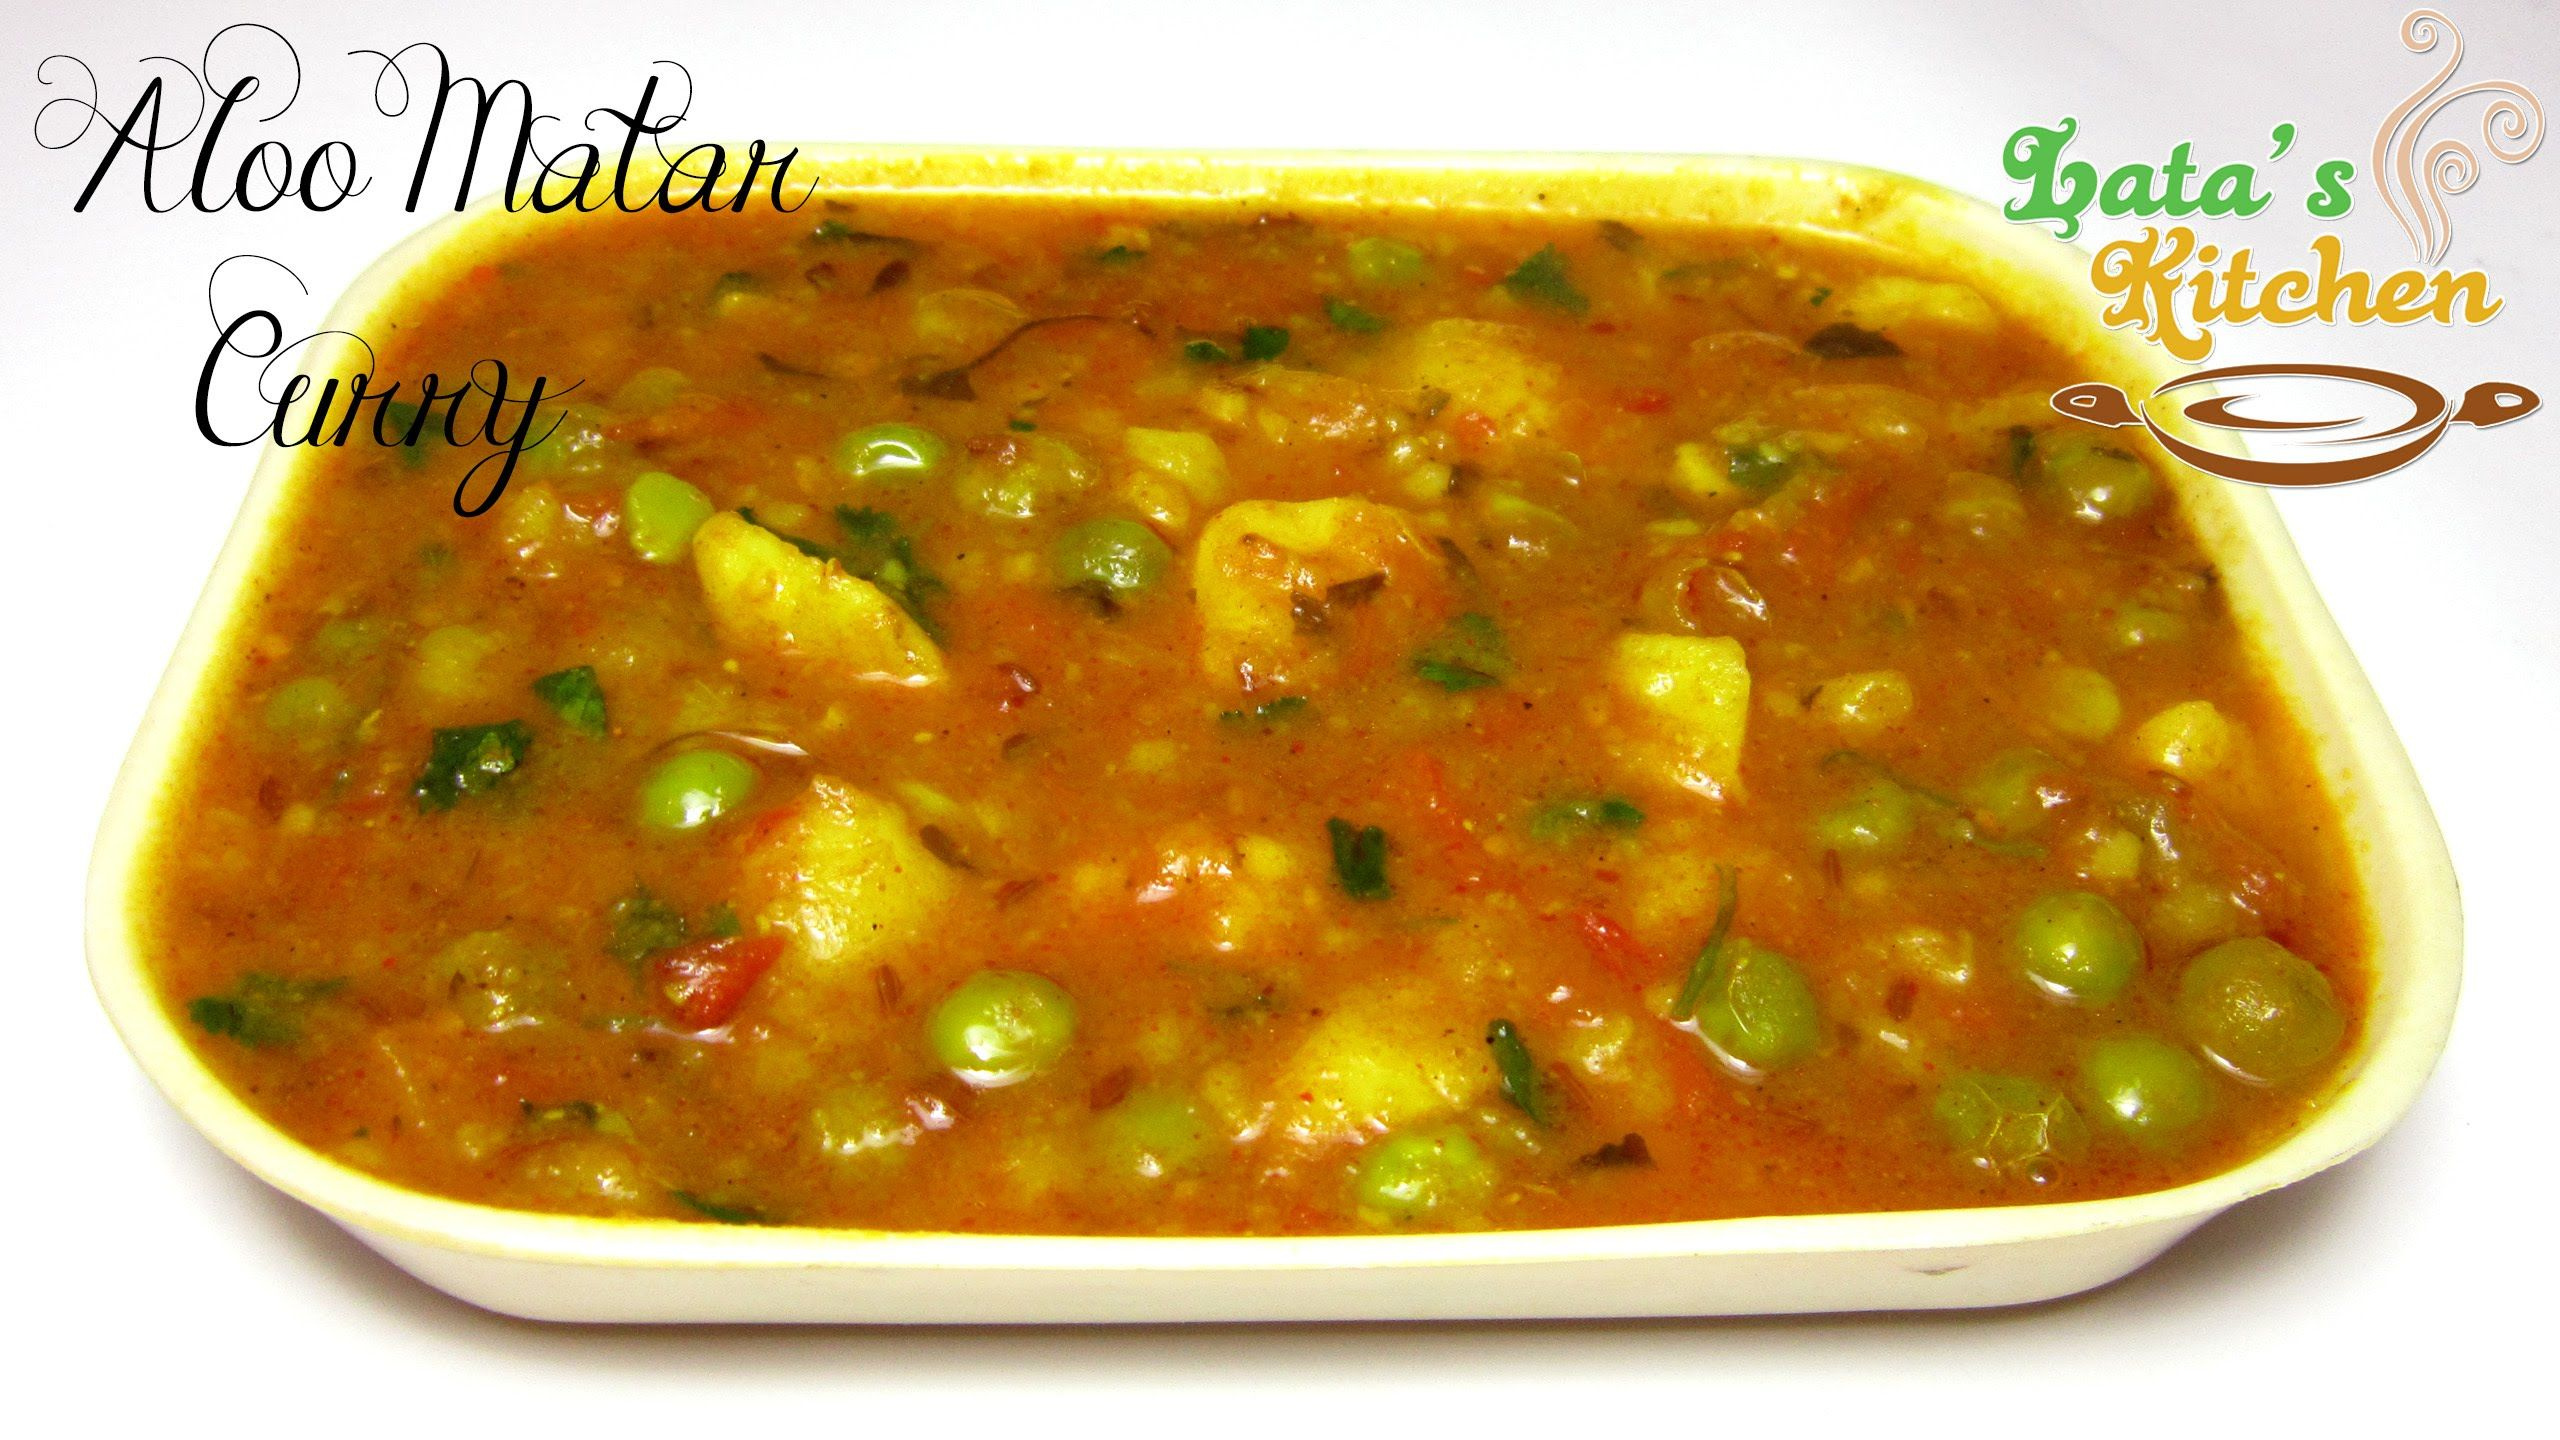 Aloo matar curry indian vegetarian recipe video in hindi with aloo matar curry indian vegetarian recipe video in hindi with english subtitles forumfinder Images